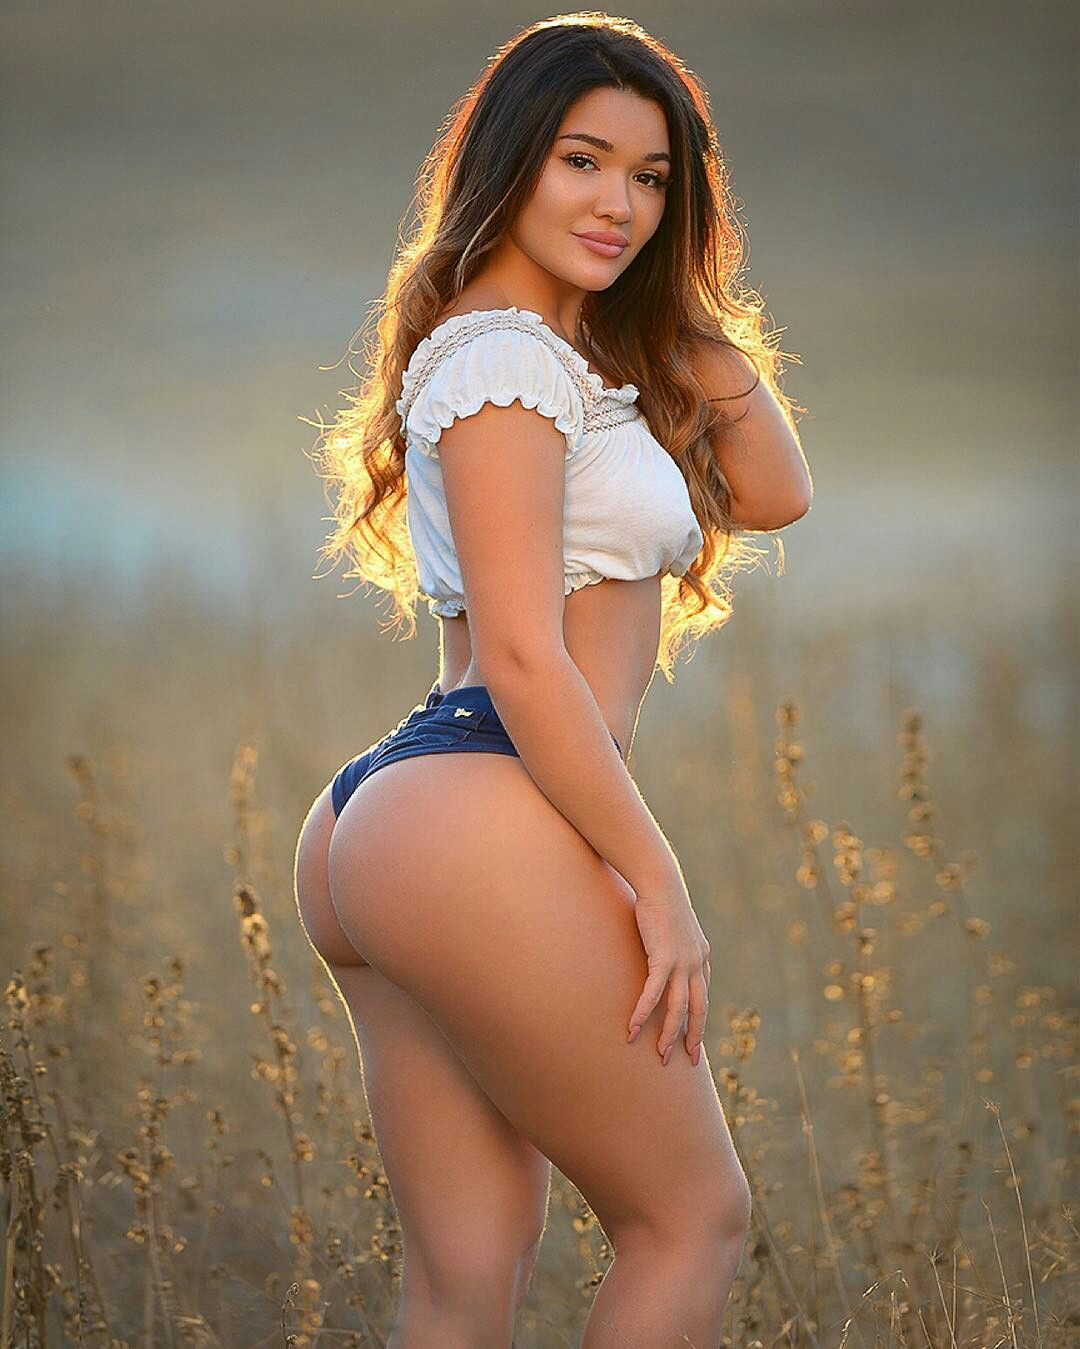 Cleavage Genesis Mia Lopez nudes (47 foto and video), Topless, Cleavage, Instagram, swimsuit 2015